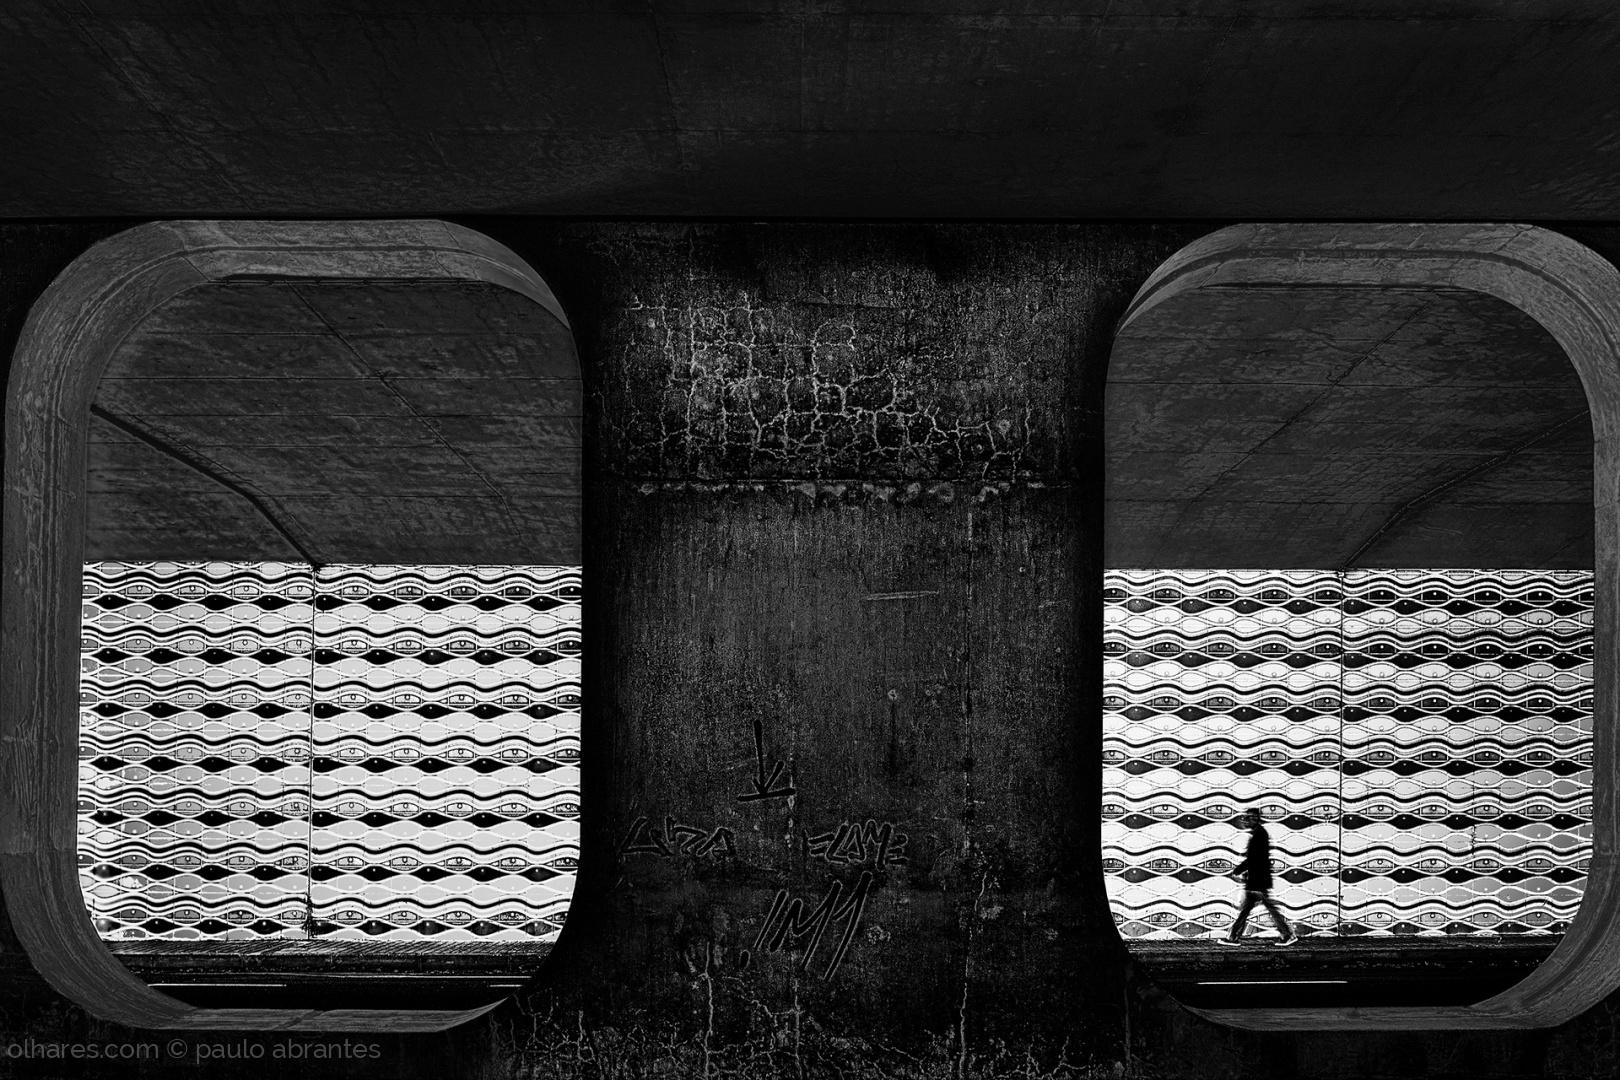 © paulo abrantes - Inside Out